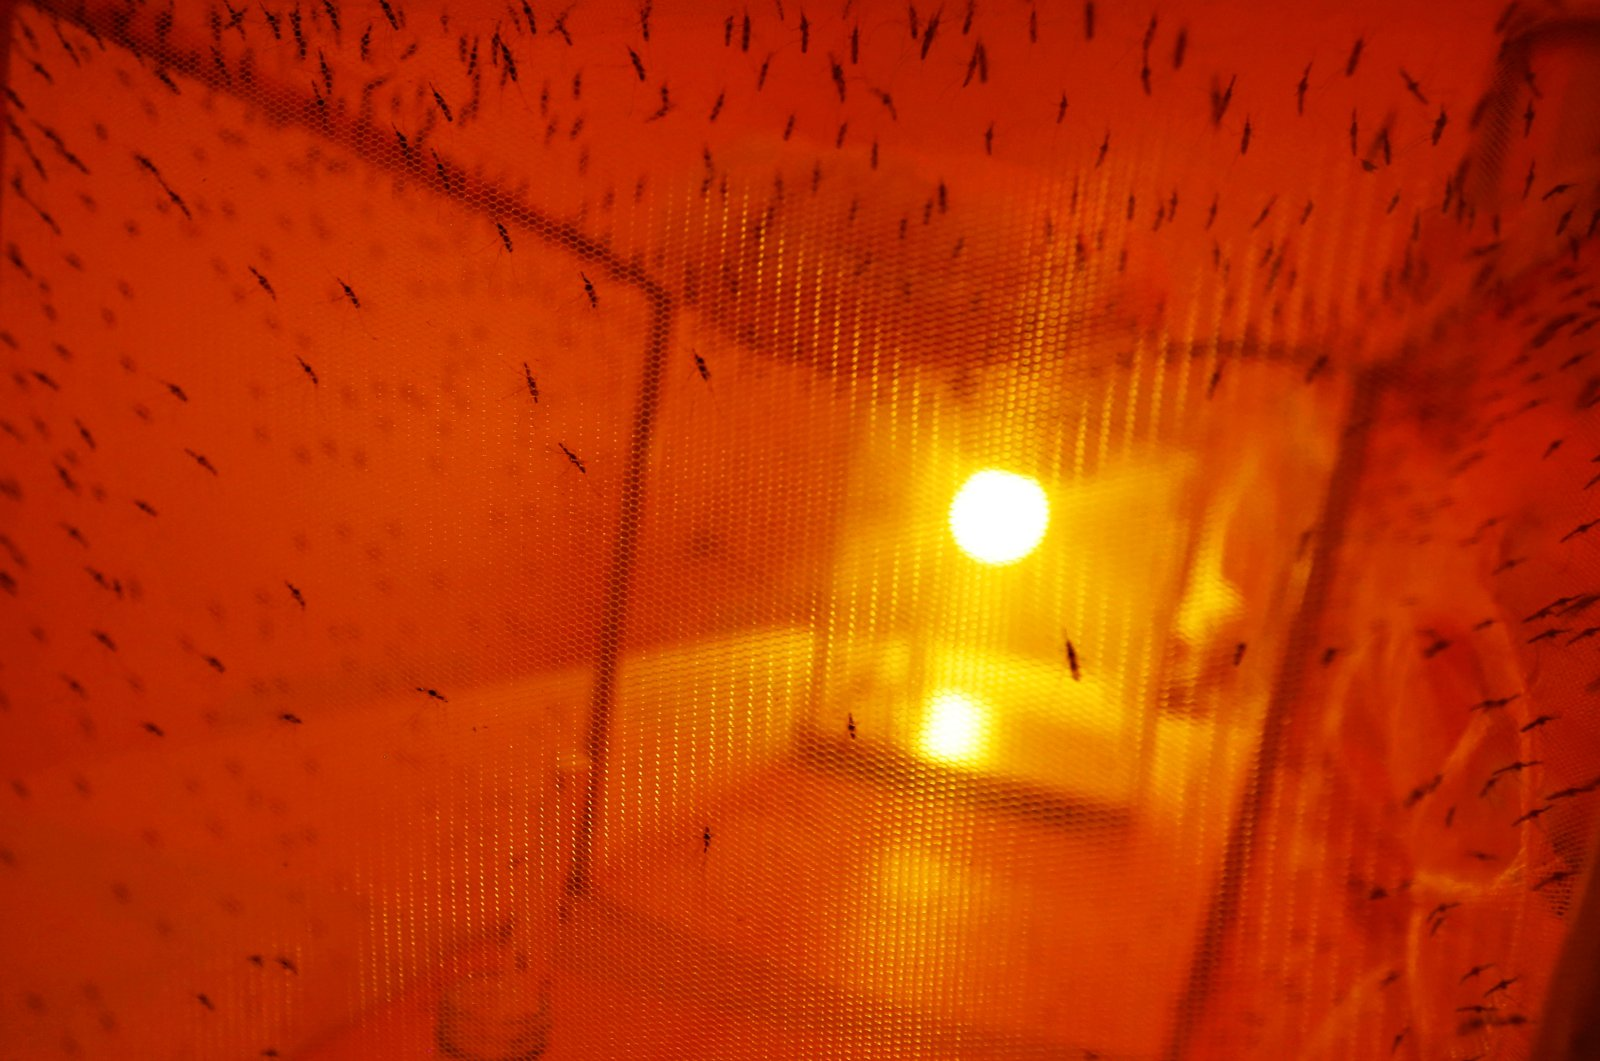 Mosquitoes used for research are seen inside a laboratory at the International Centre of Insect Physiology and Ecology (ICIPE) headquarters in Nairobi, Kenya, May 11, 2020. (Reuters Photo)